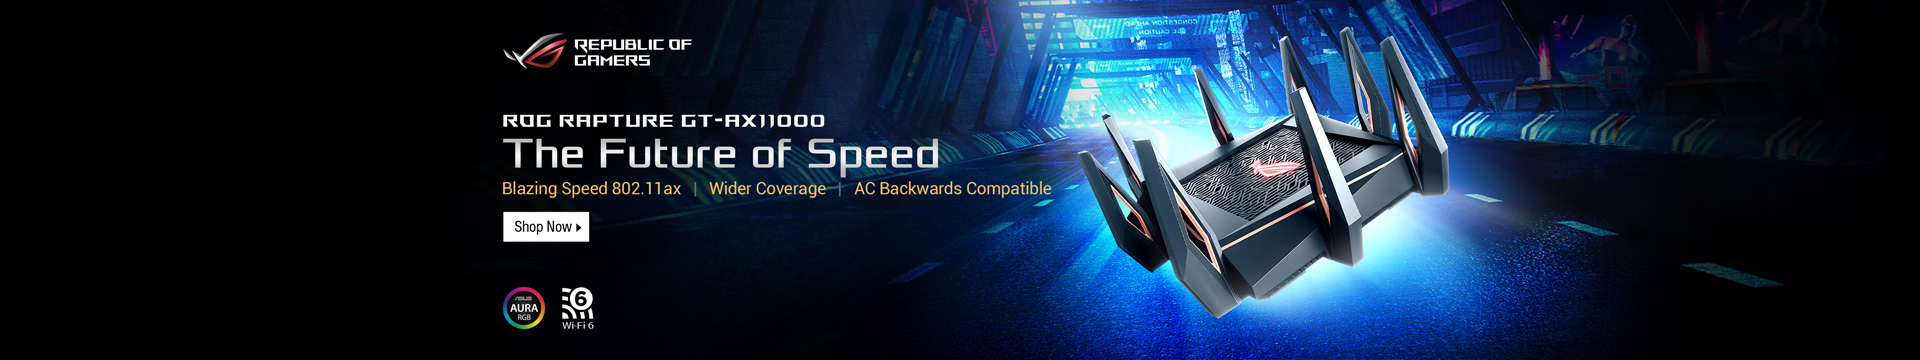 The Future of Speed